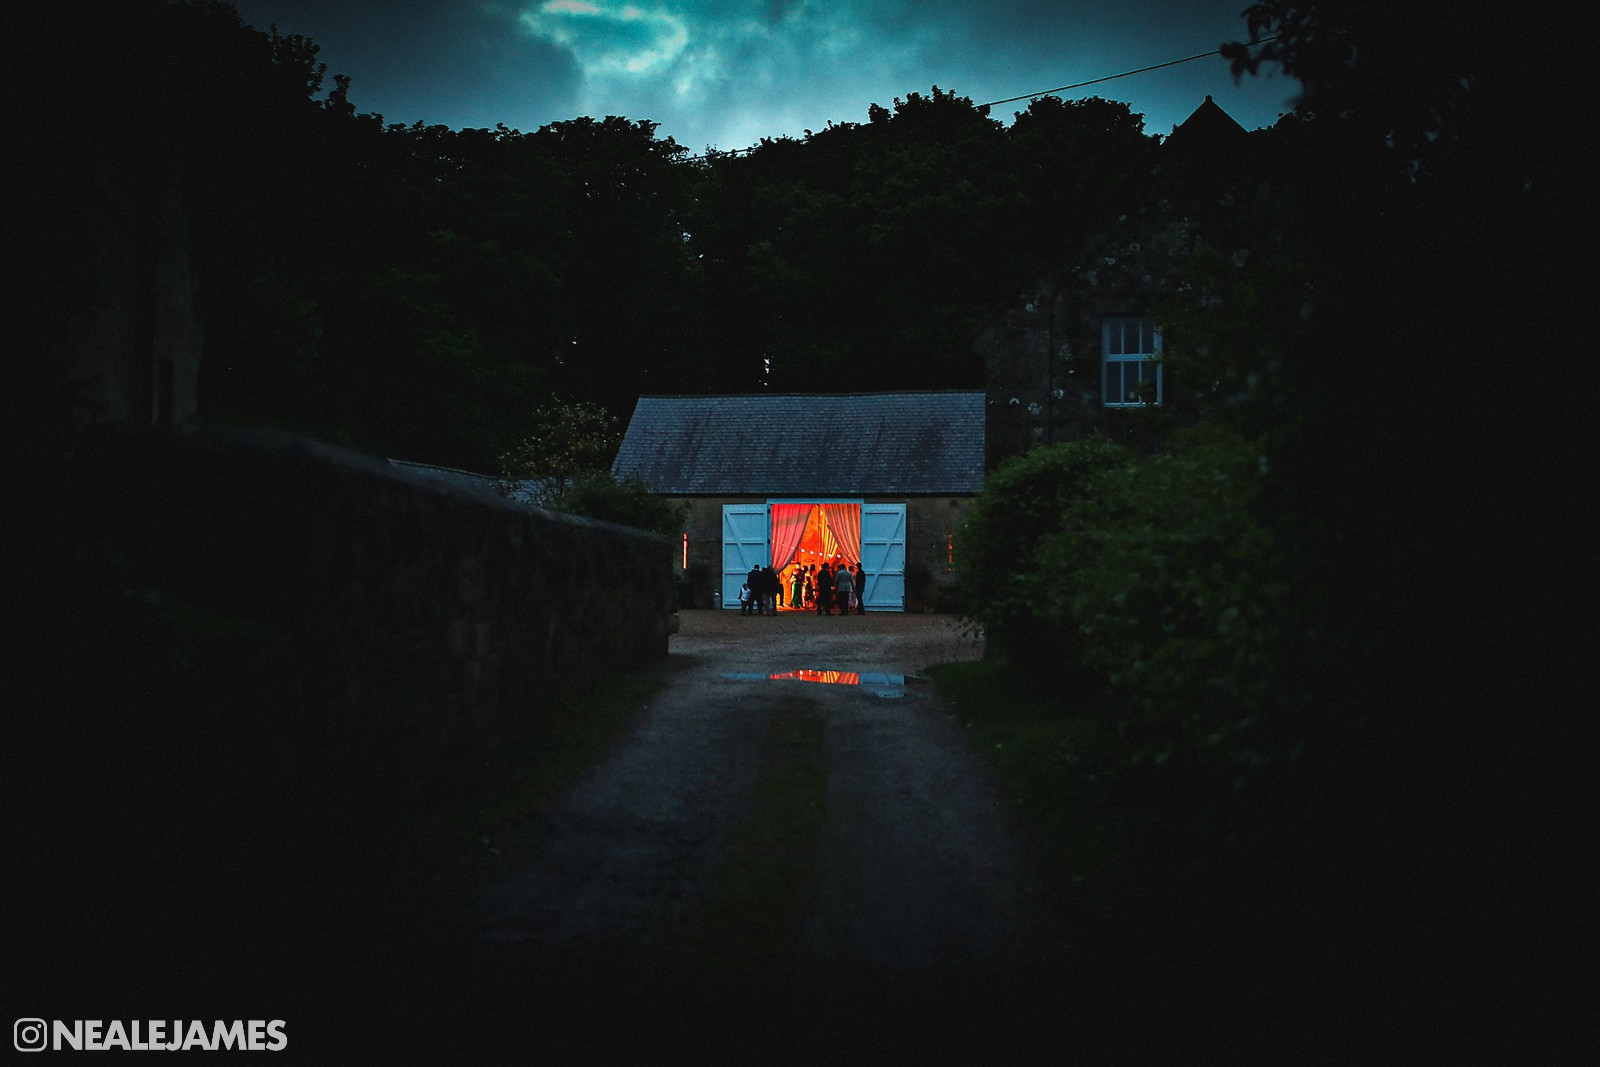 Colour picture to go on the Wedding Photography Gallery page. Late night picture where you see into a barn illuminated only by the band's lights.